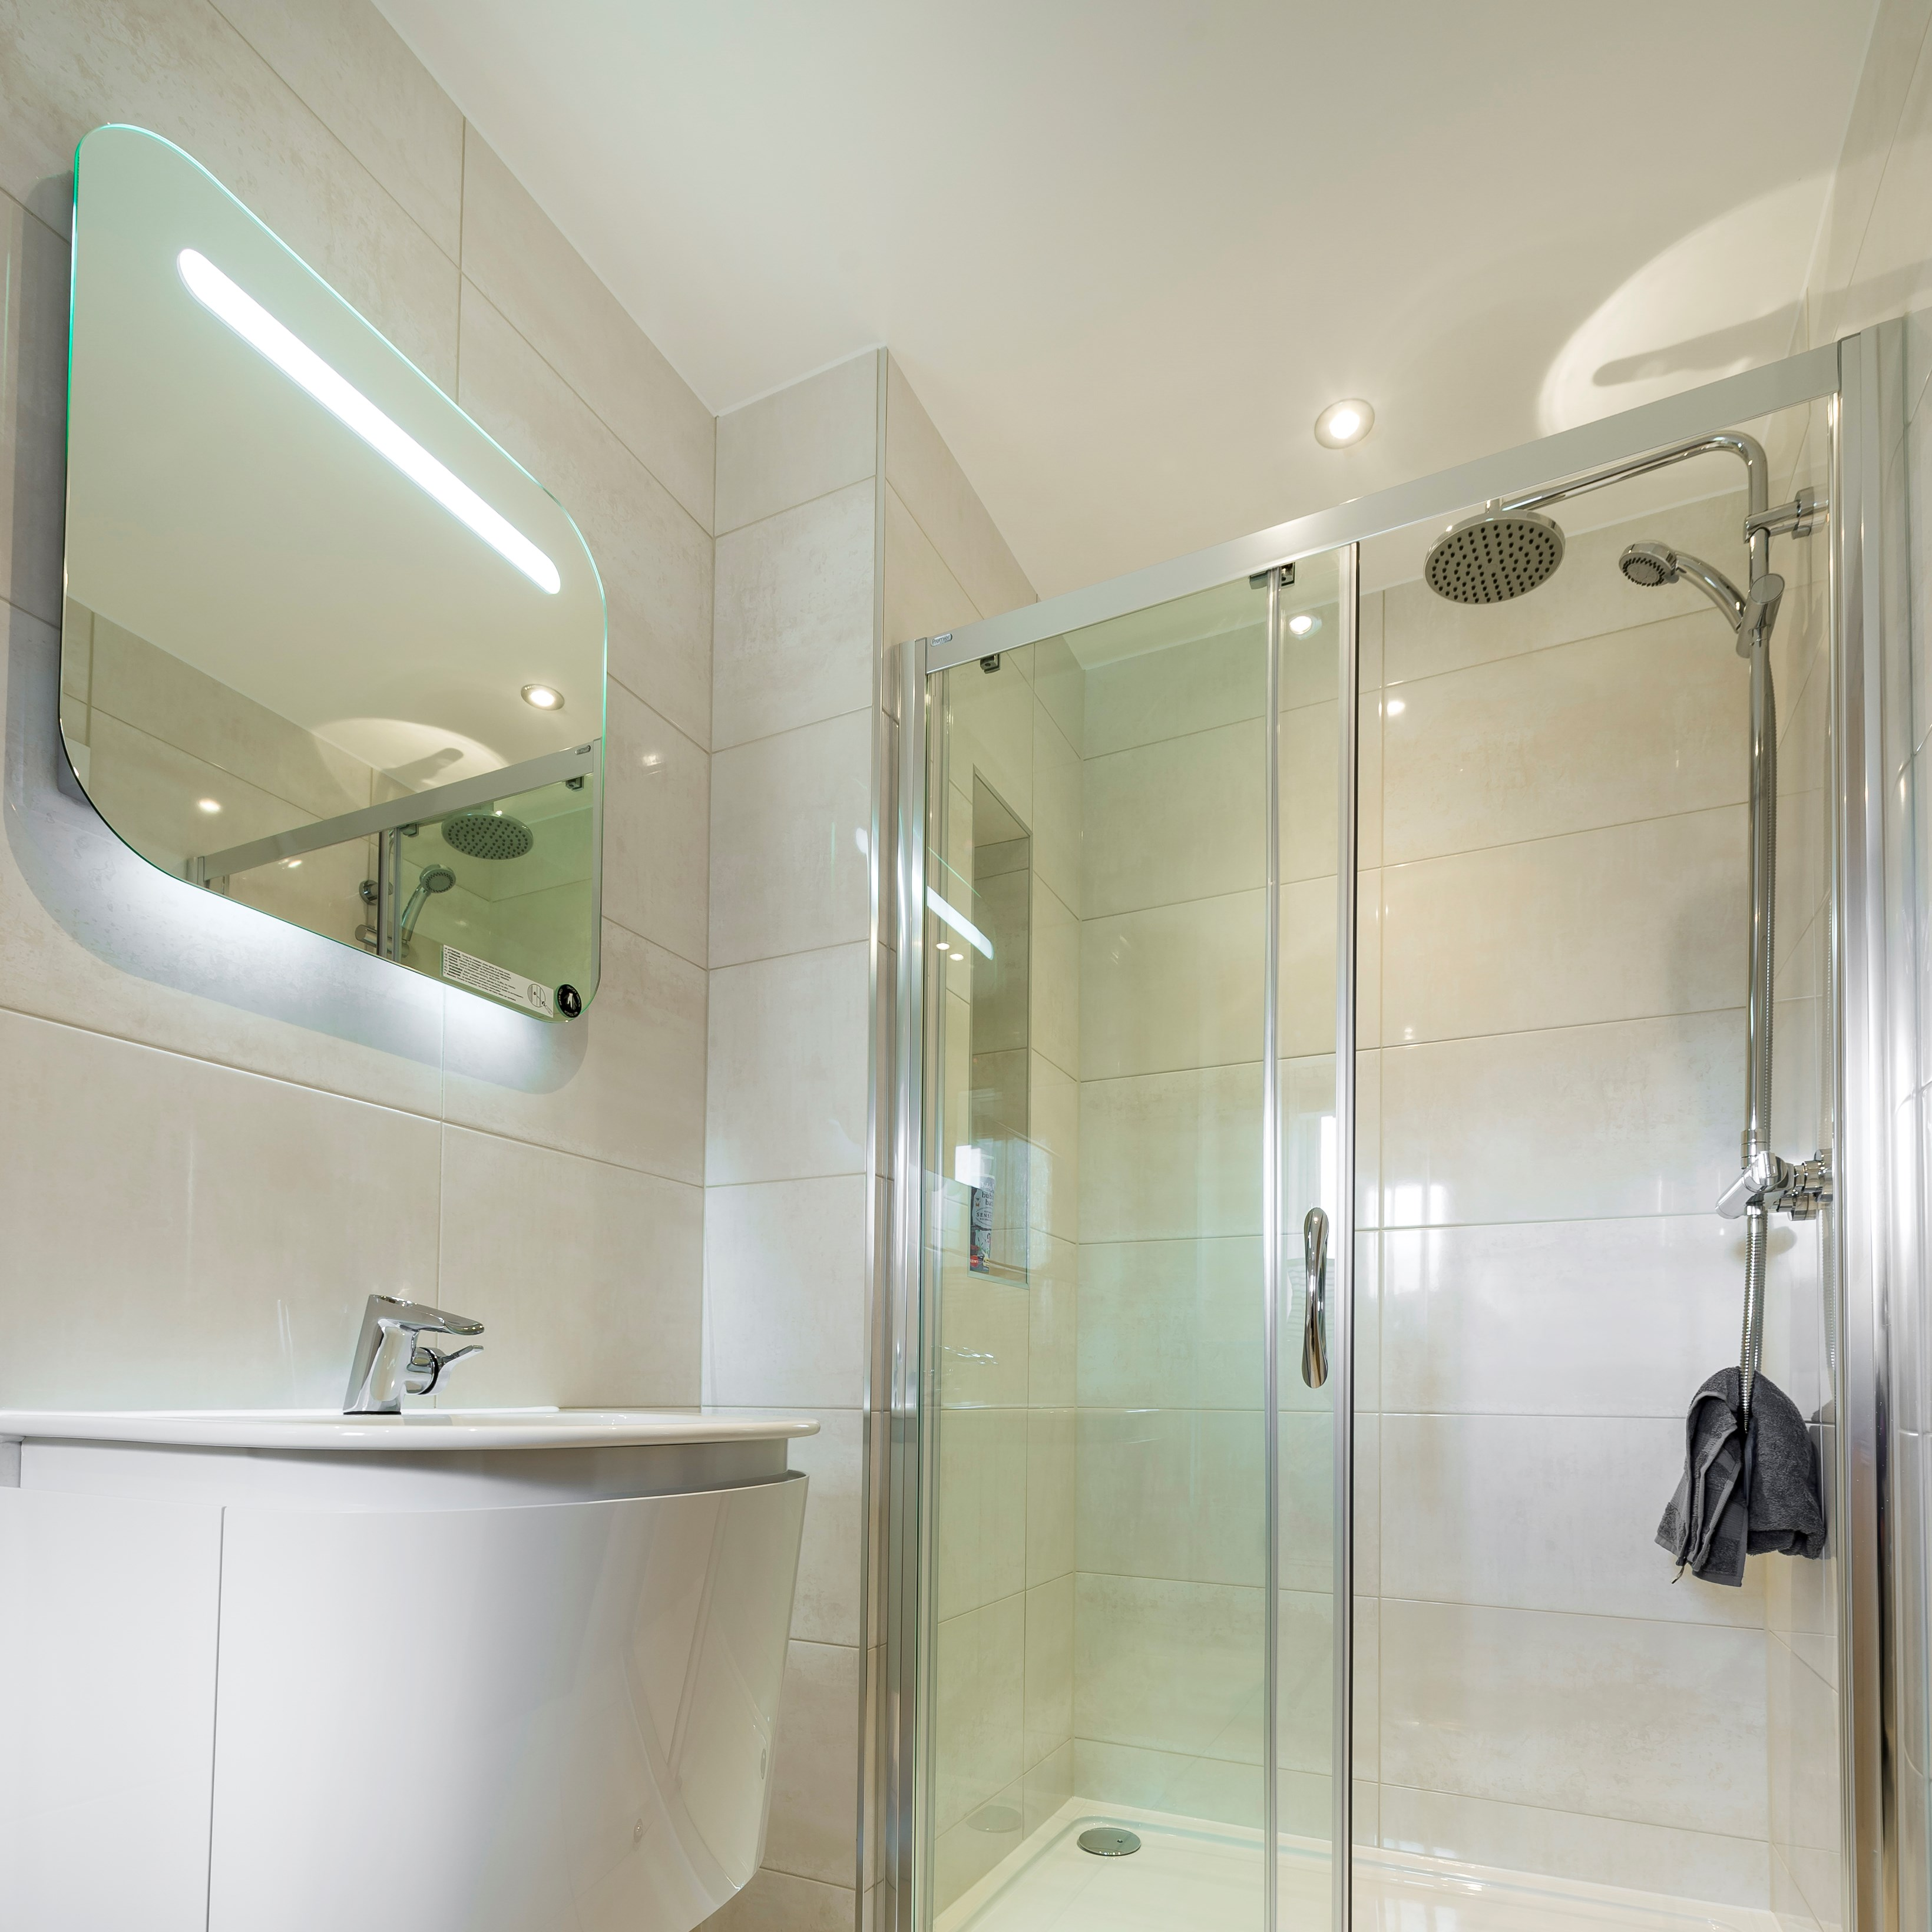 Attractive Disabled Shower Grab Rails Images - Bathtub Design Ideas ...